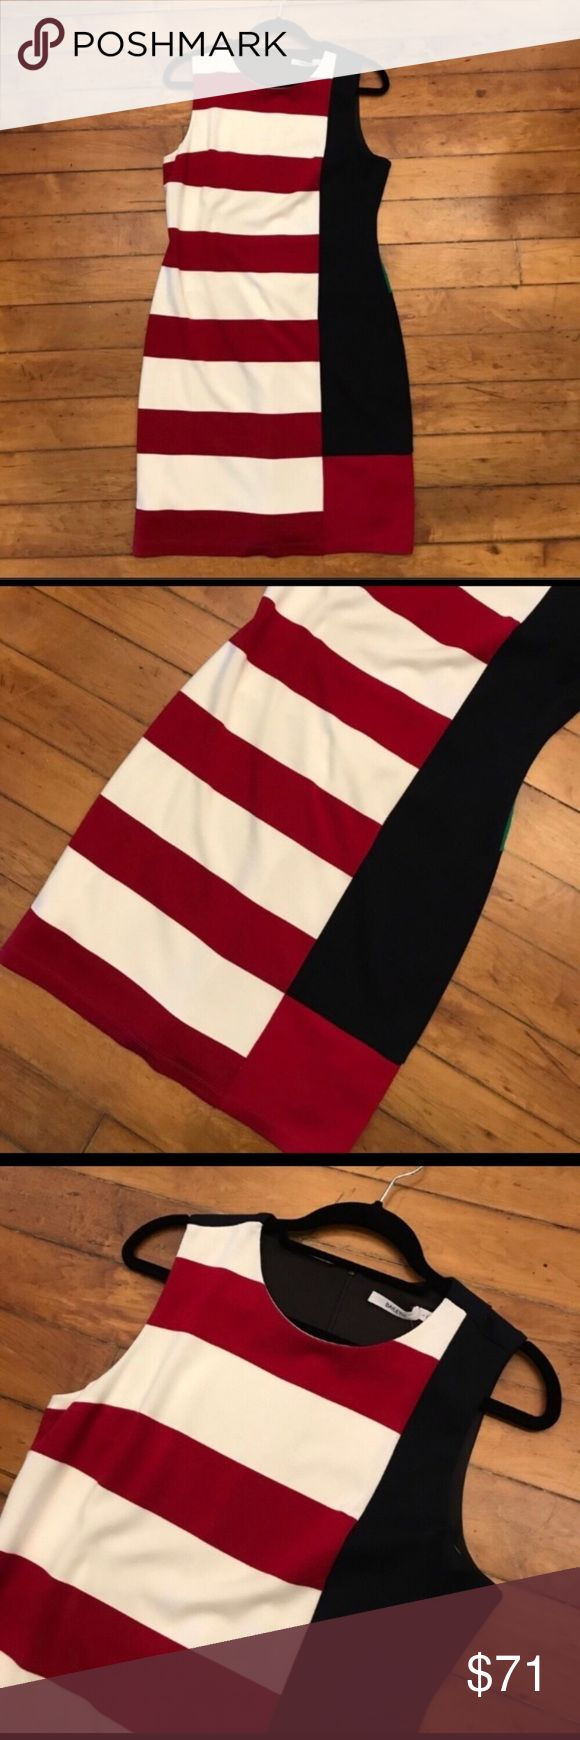 Anthropologie Bailey 44 Red & White Striped Dress ⚜️I love receiving offers through the offer button!⚜️ Good condition, as seen in pictures! Fast same or next day shipping!📨 Open to offers but I don't negotiate in the comments so please use the offer button😊 Check out the rest of my closet for more Adidas, Lululemon, Tory Burch, Urban Outfitters, Free People, Anthropologie, Victoria's Secret, Sam Edelman, Topshop, Asos, Revolve, Brandy Melville, Zara, and American Apparel! Anthropologie…